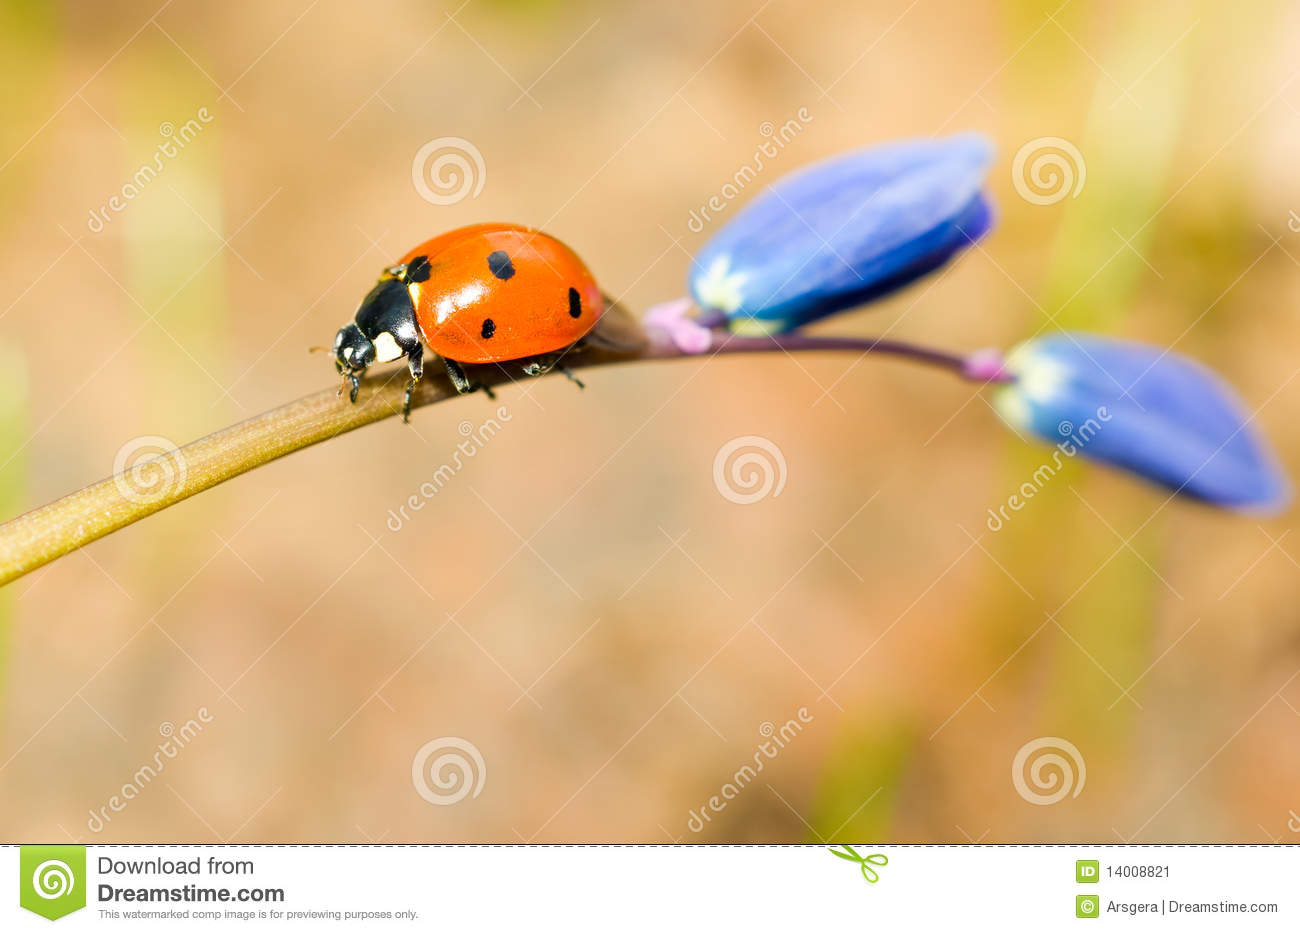 Download Walking By. Closeup Of Ladybird On Snowdrop Stock Image - Image of insect, flora: 14008821